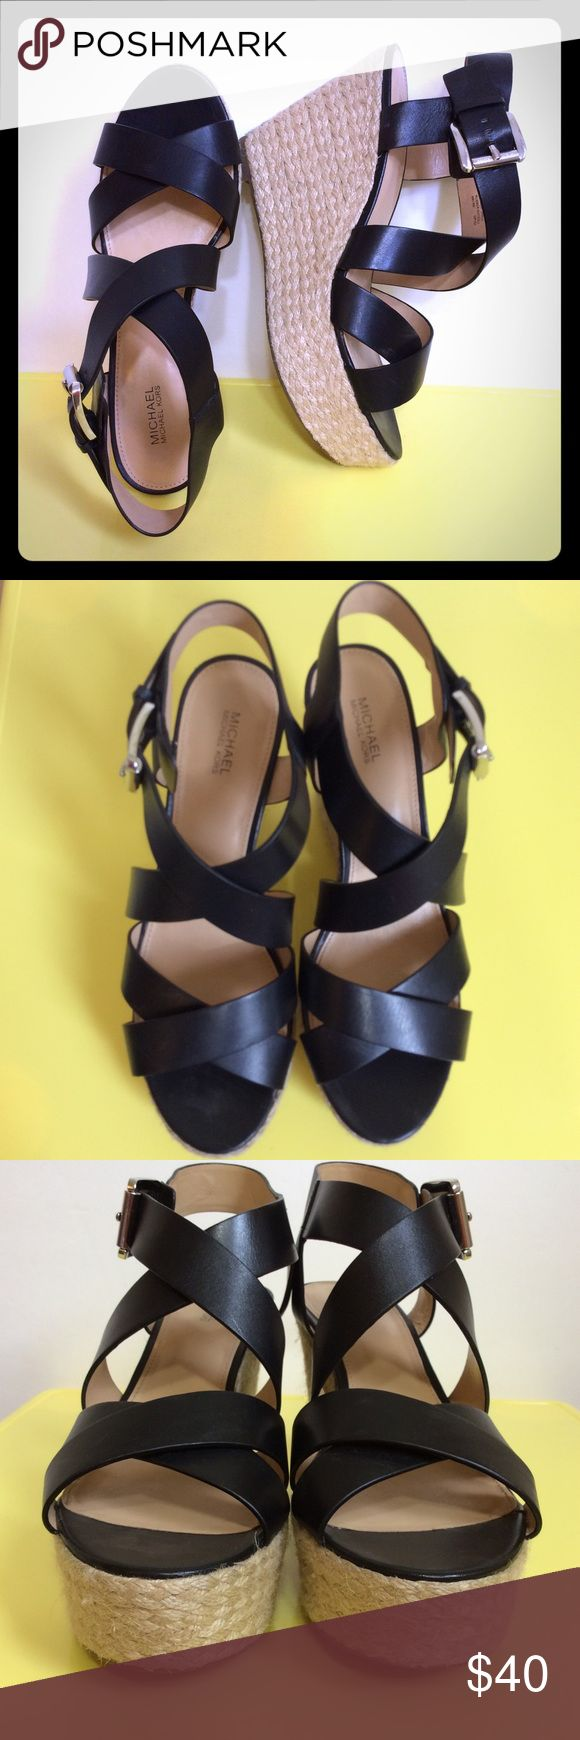 "Michael Kors Black Espadrille Wedge Shoes Size 9M In great condition. 4.5"" Heels. Silver hardware. Leather upper and rubber outsole. MICHAEL Michael Kors Shoes Wedges"